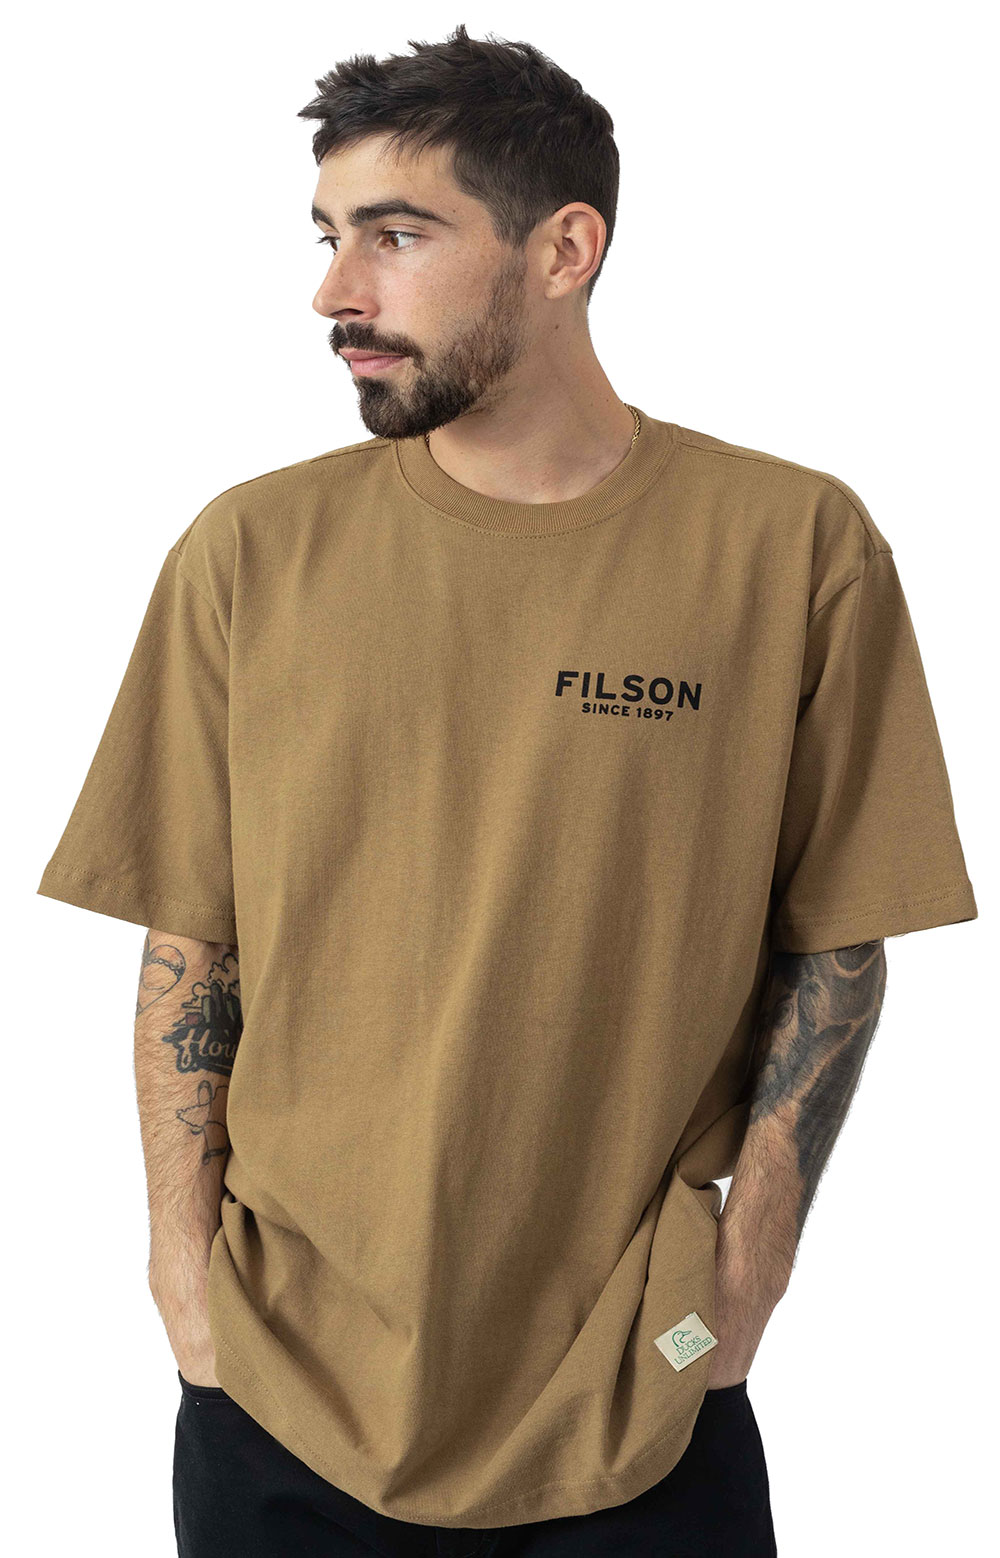 S/S Outfitter Graphic T-Shirt - Rugged Tan  2